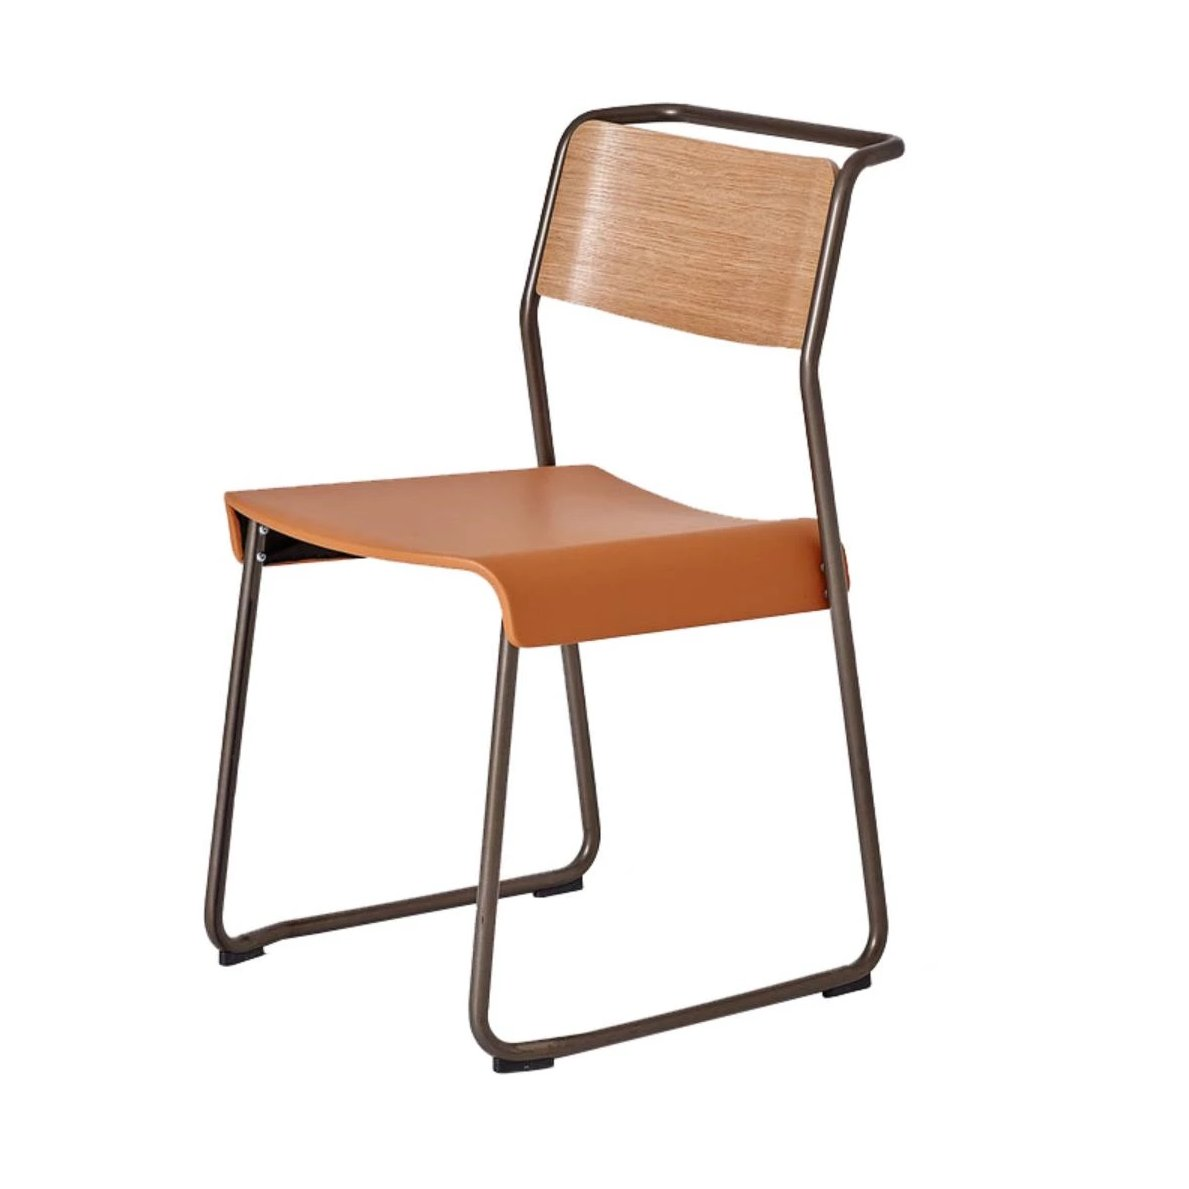 Canteen Utility Chair: Upholstered: Oak + Black Red